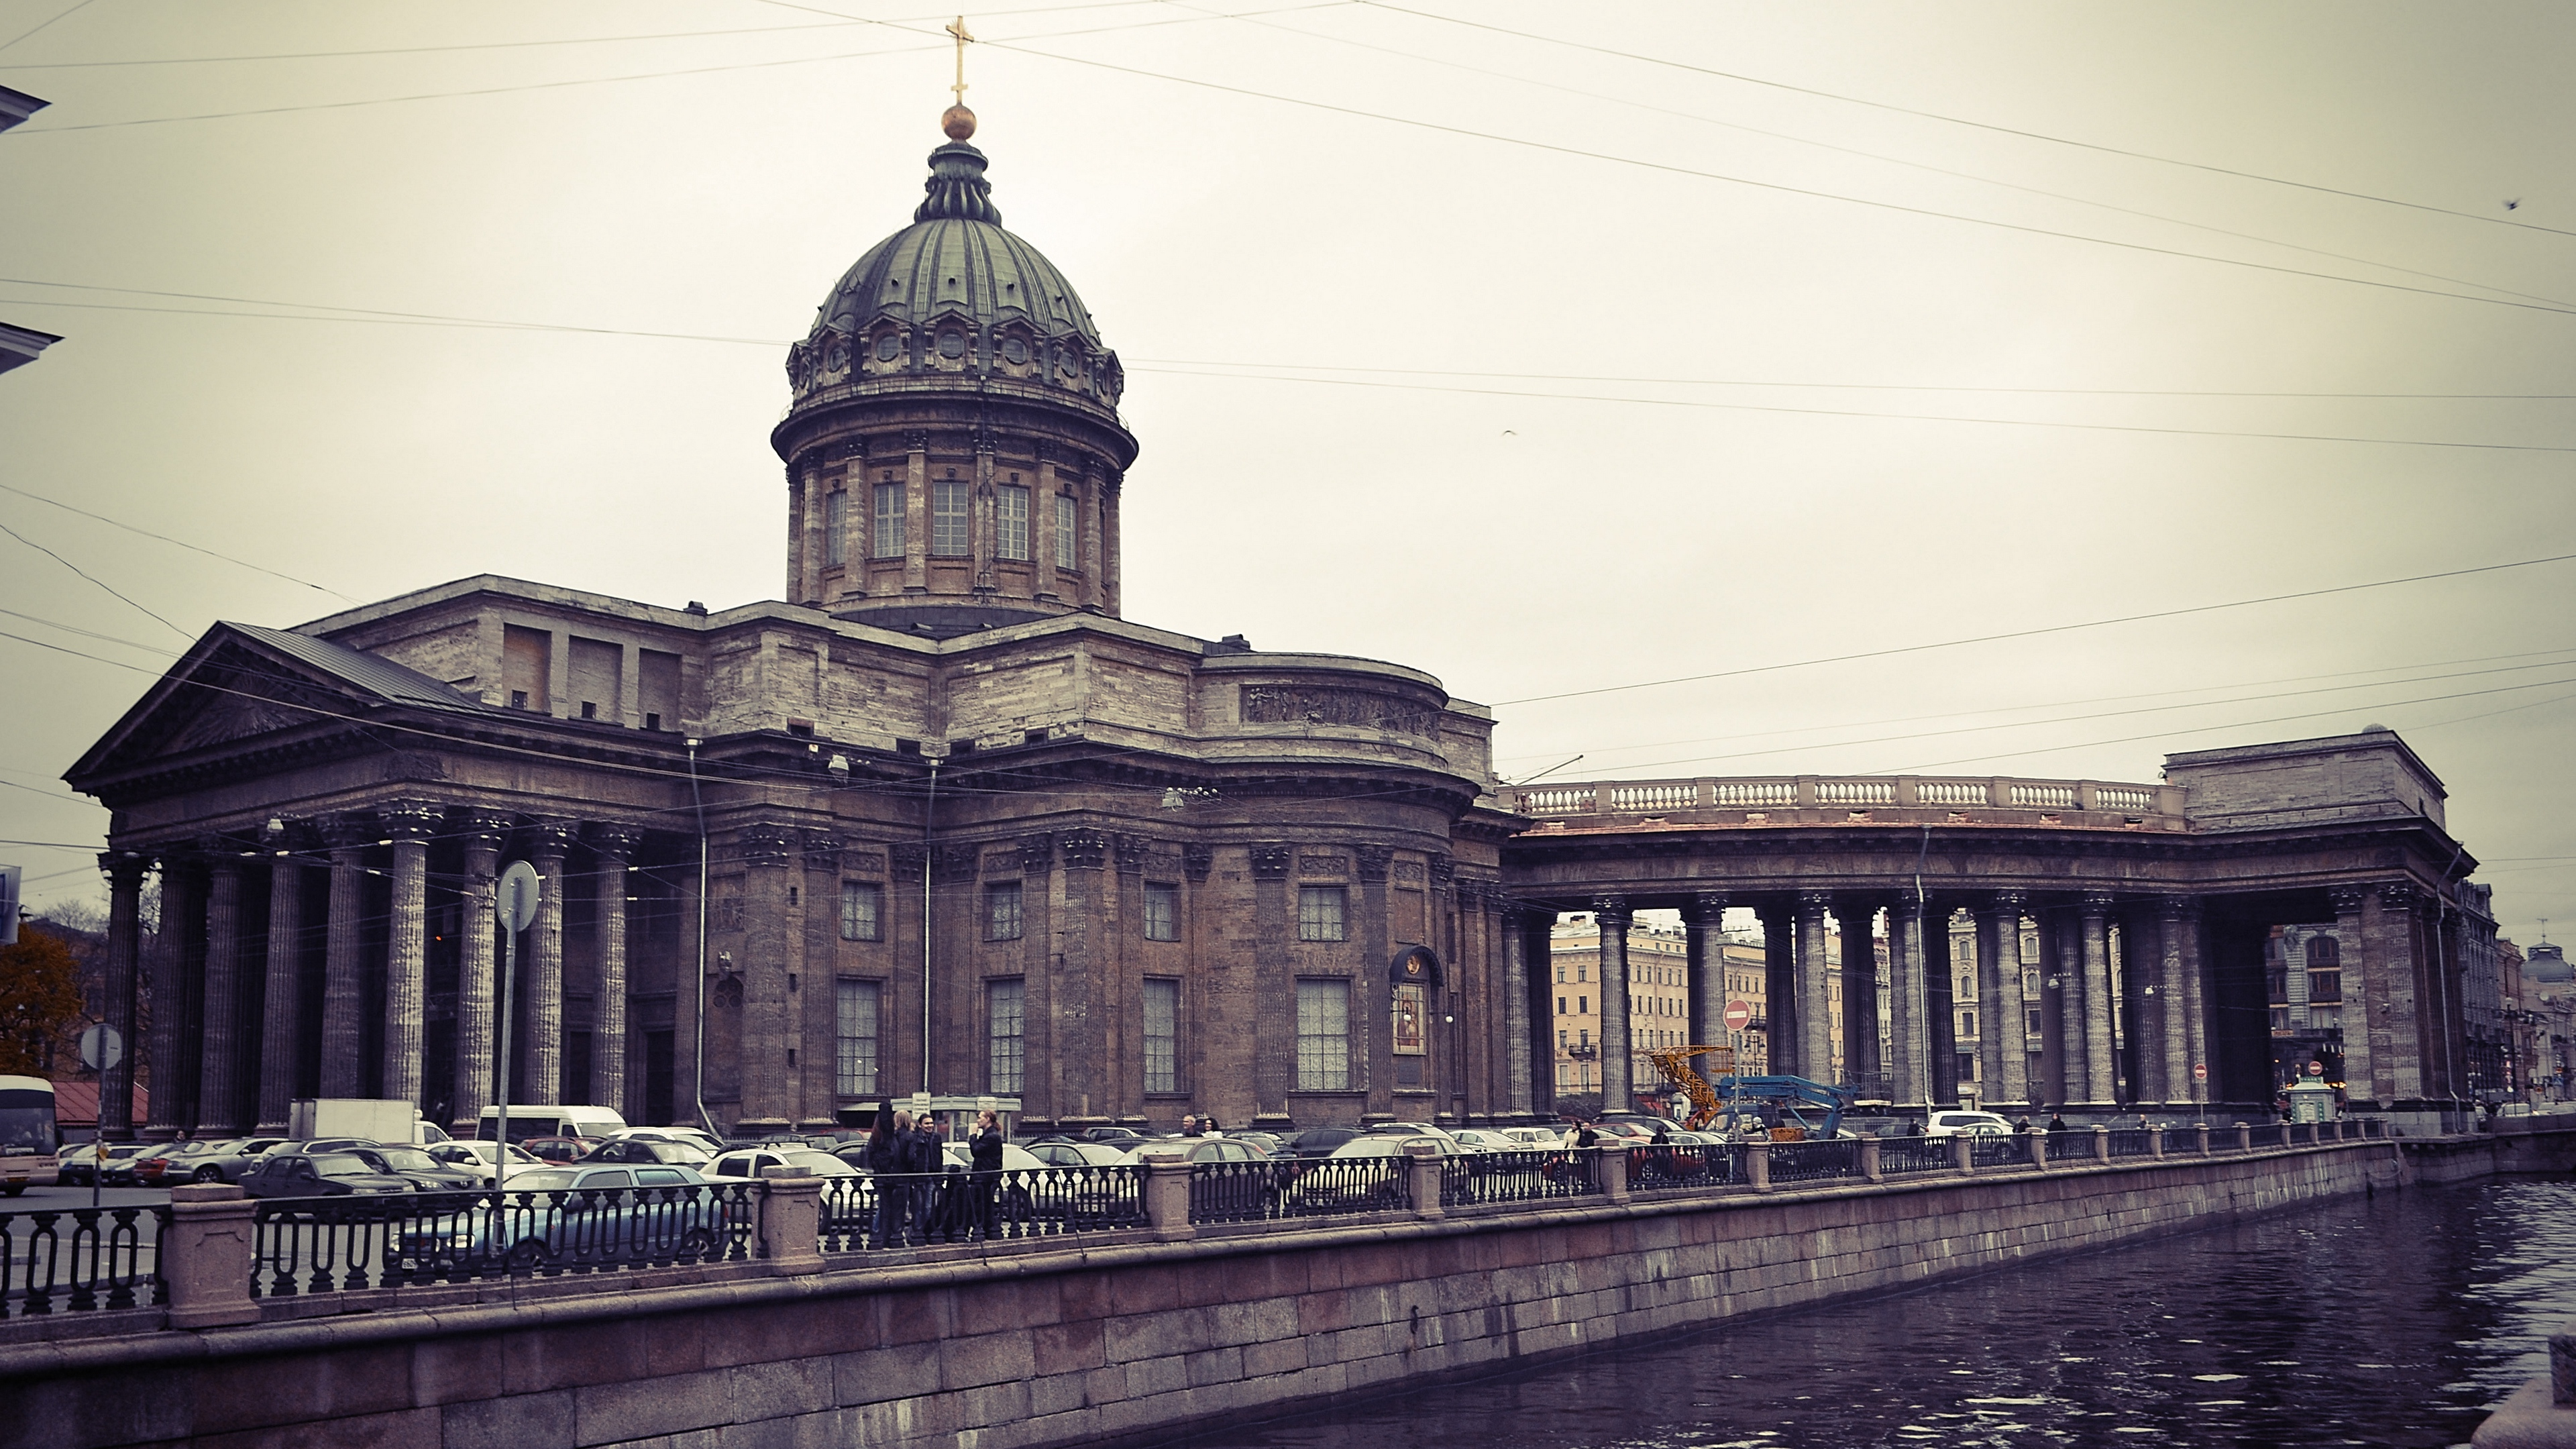 st petersburg quay river kazan cathedral 4k 1538065411 - st petersburg, quay, river, kazan cathedral 4k - st petersburg, River, quay